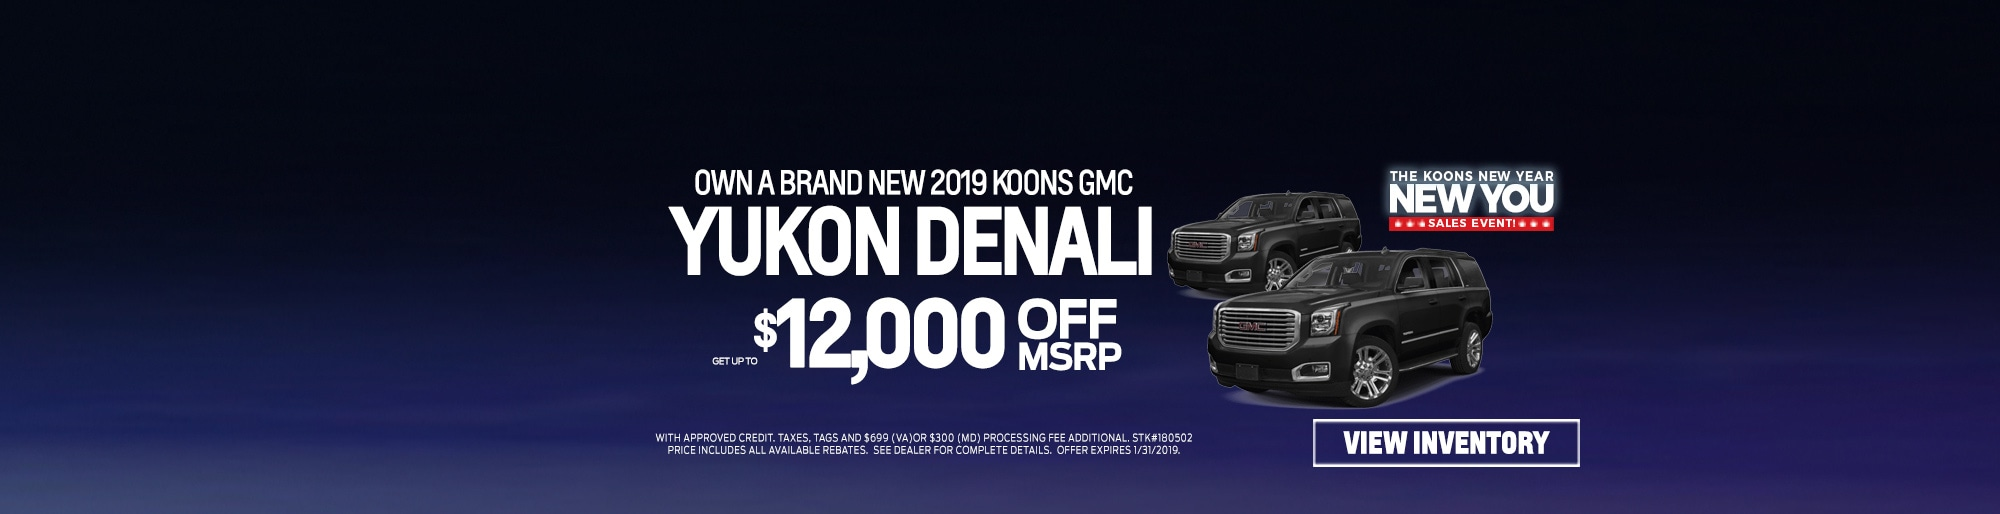 Koons Tysons Chevy Buick Gmc Chevrolet Dealership In 2015 Canyon Oil Filter Location Previous Next